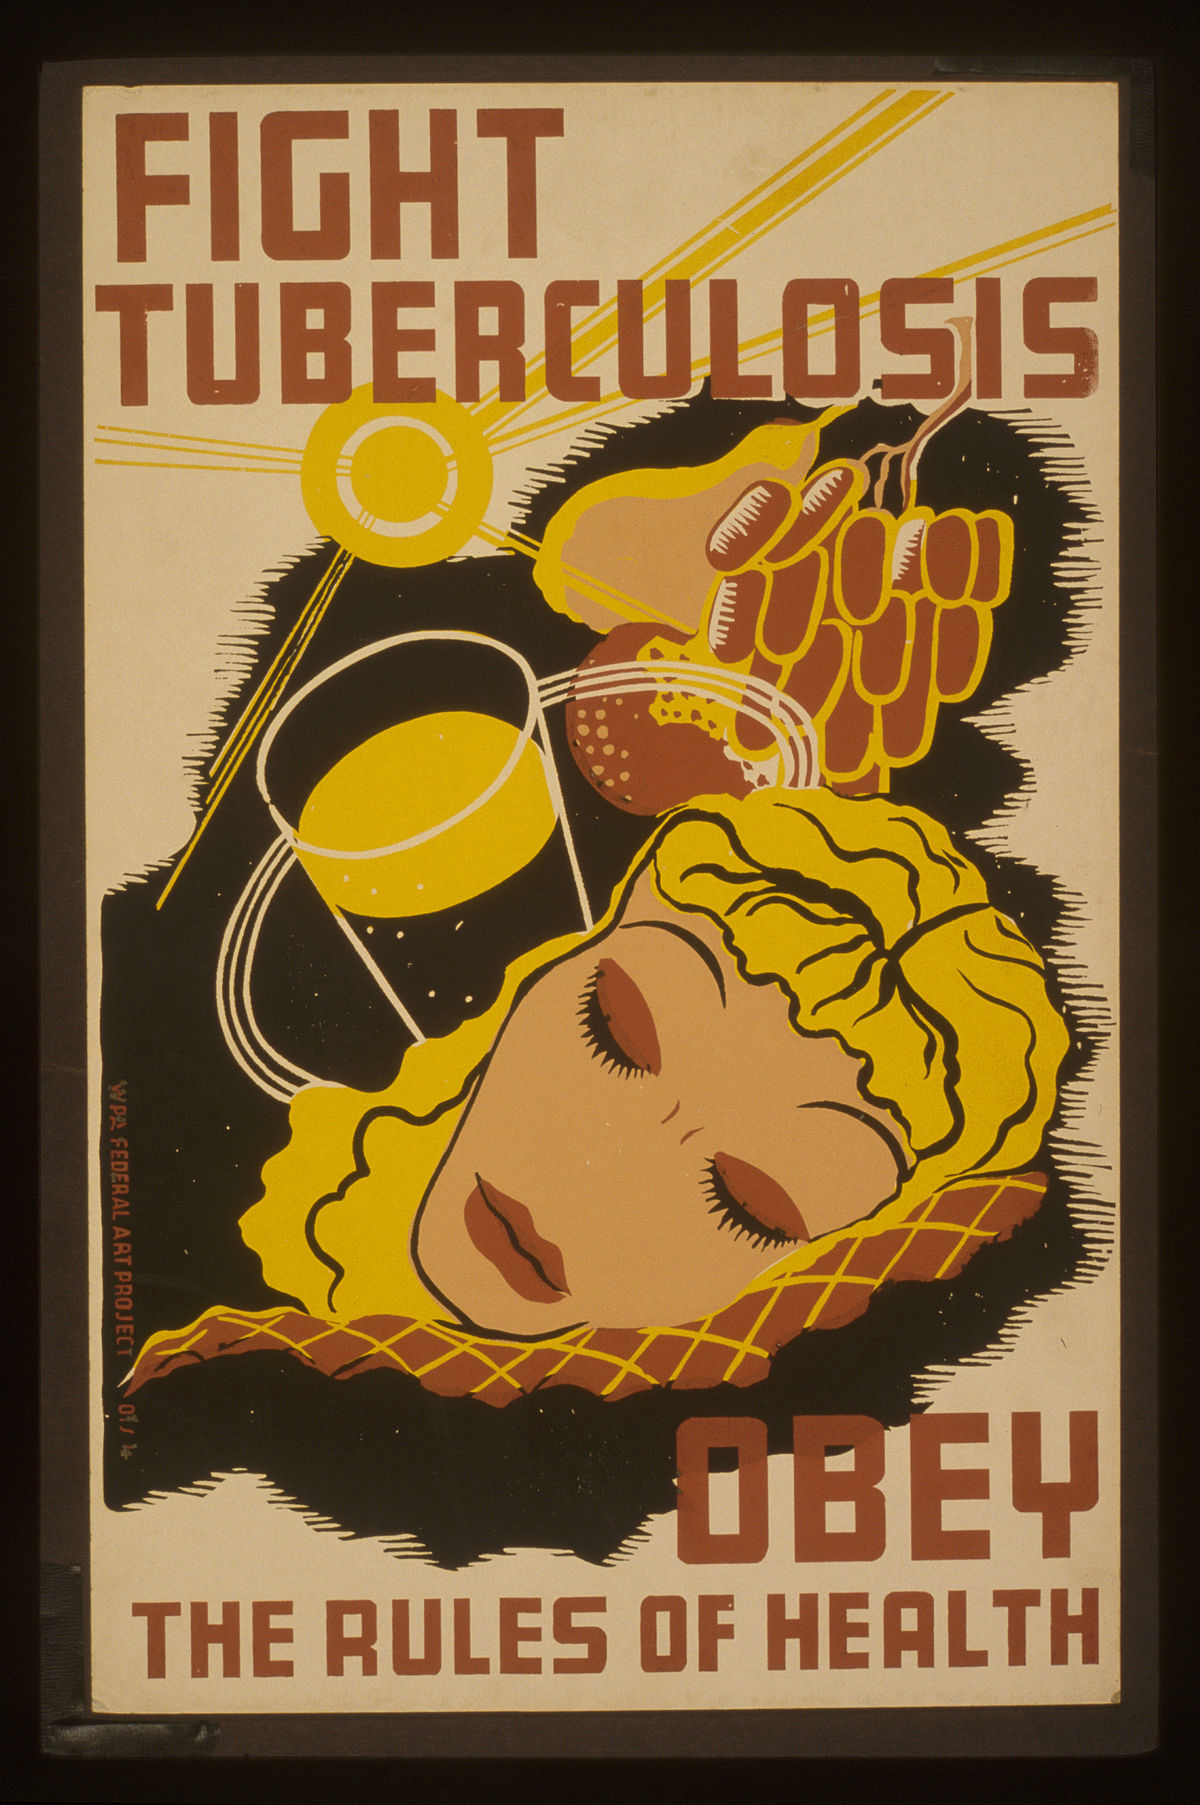 Public domain wpa poster page 42